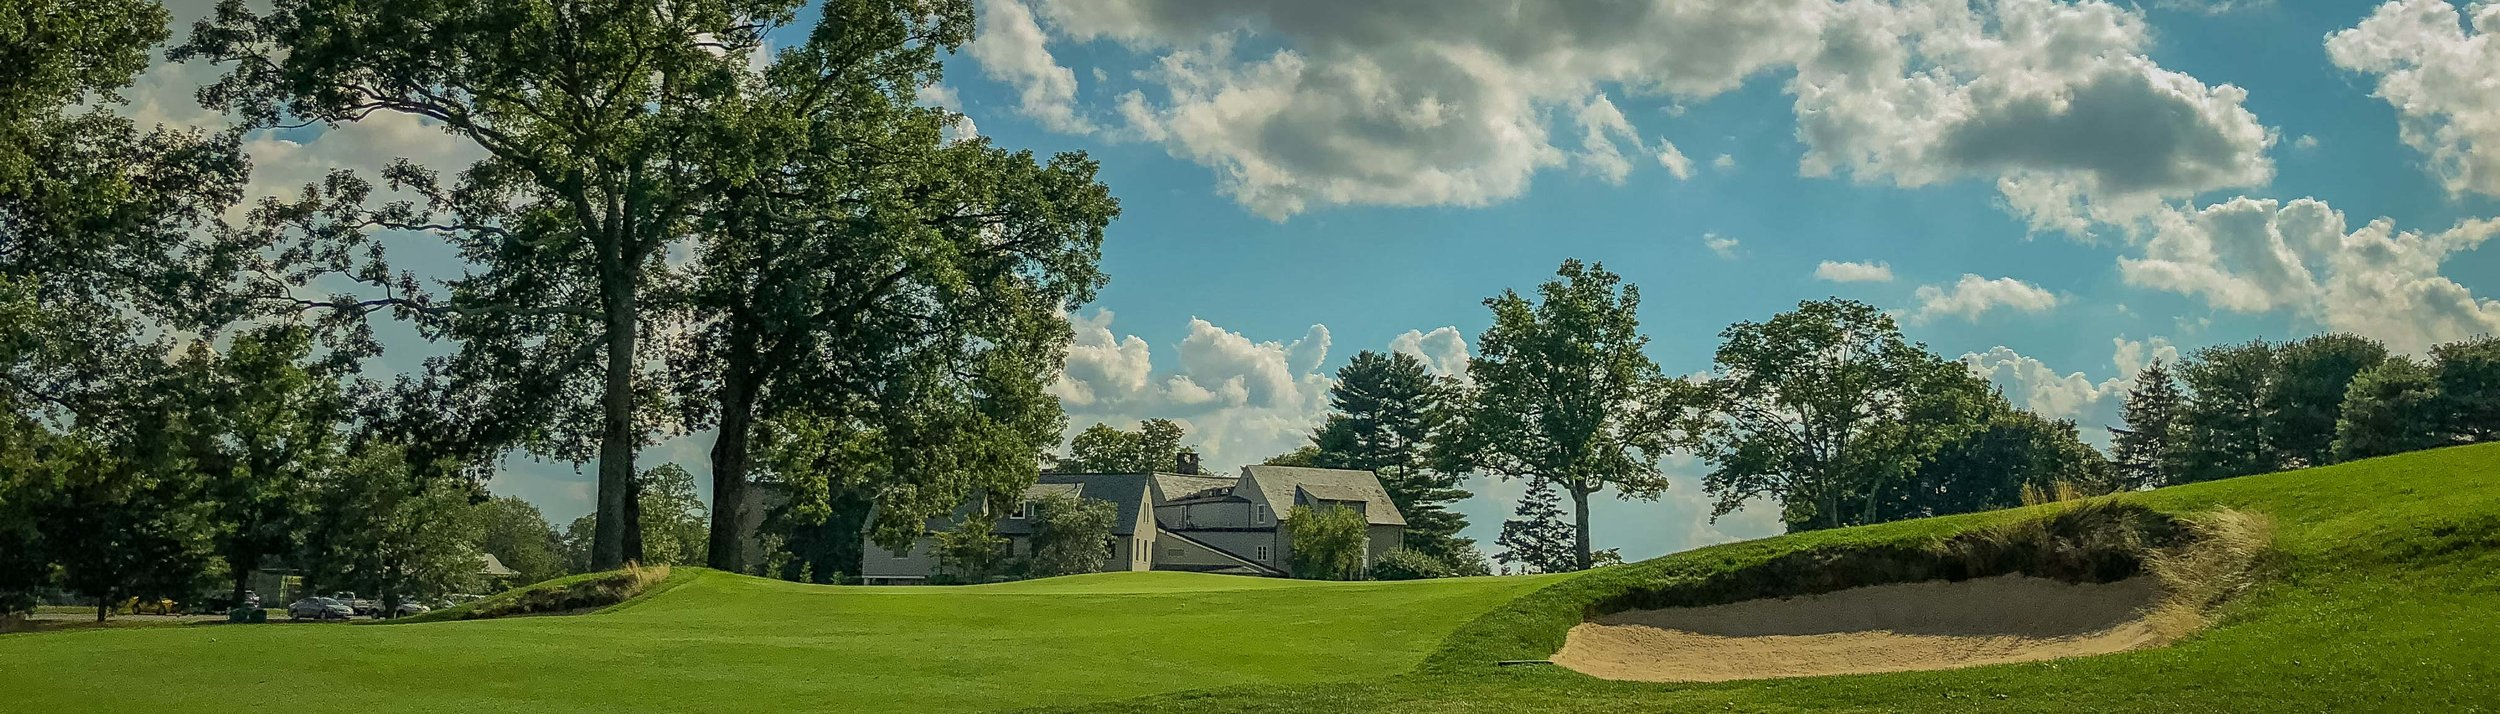 Golf Course SCC 2018- HAP (19 of 33).jpg